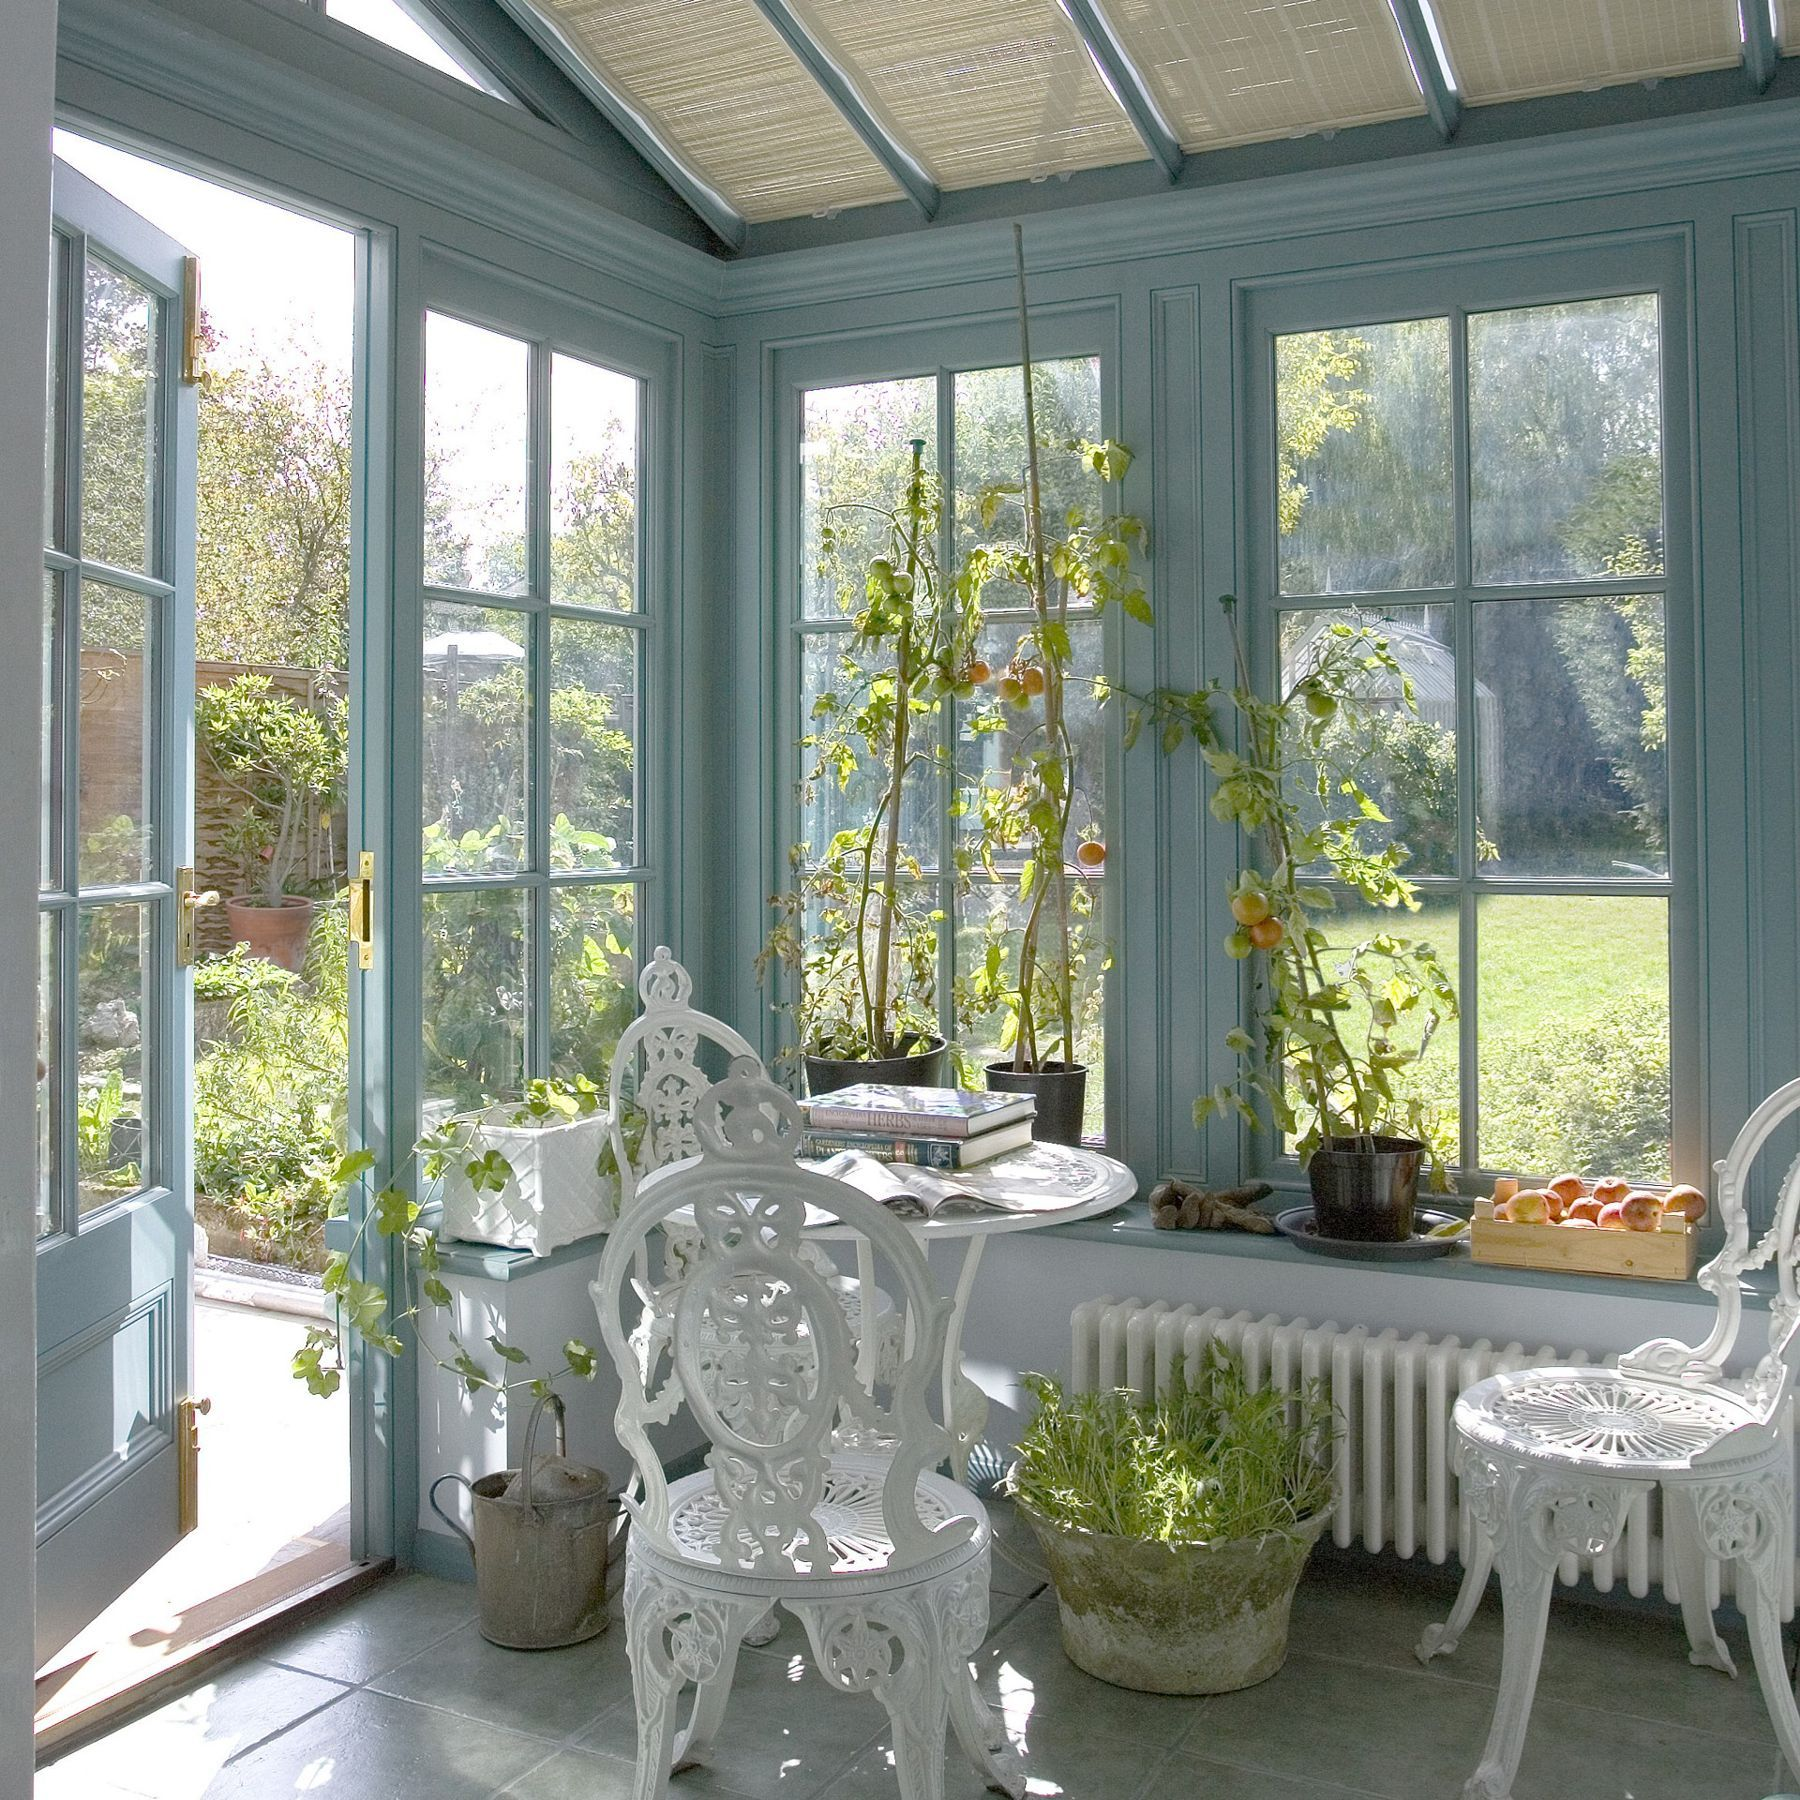 Garden House Beautiful Magazine Inspires Garden Lovers: Conservatory And Glass House Ideas